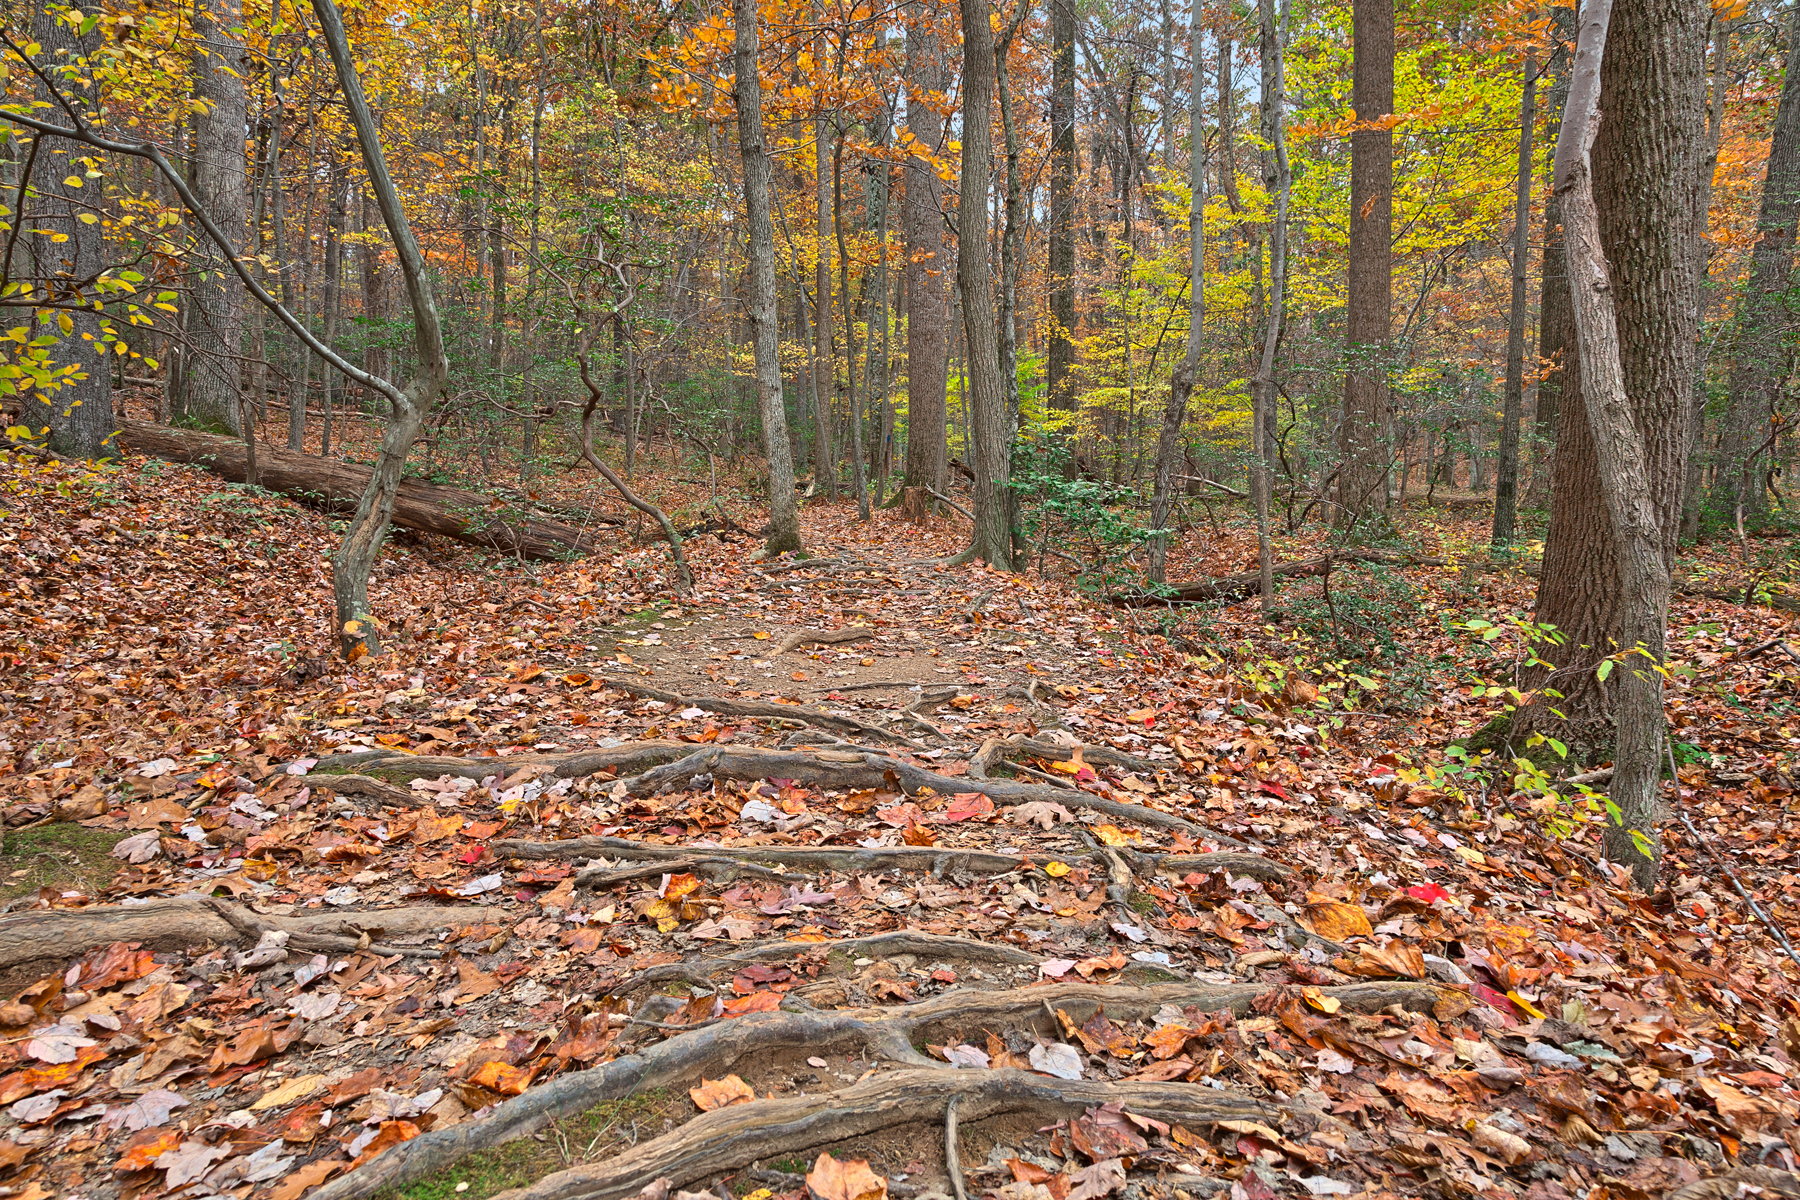 Seneca fall forest trail - hdr photo